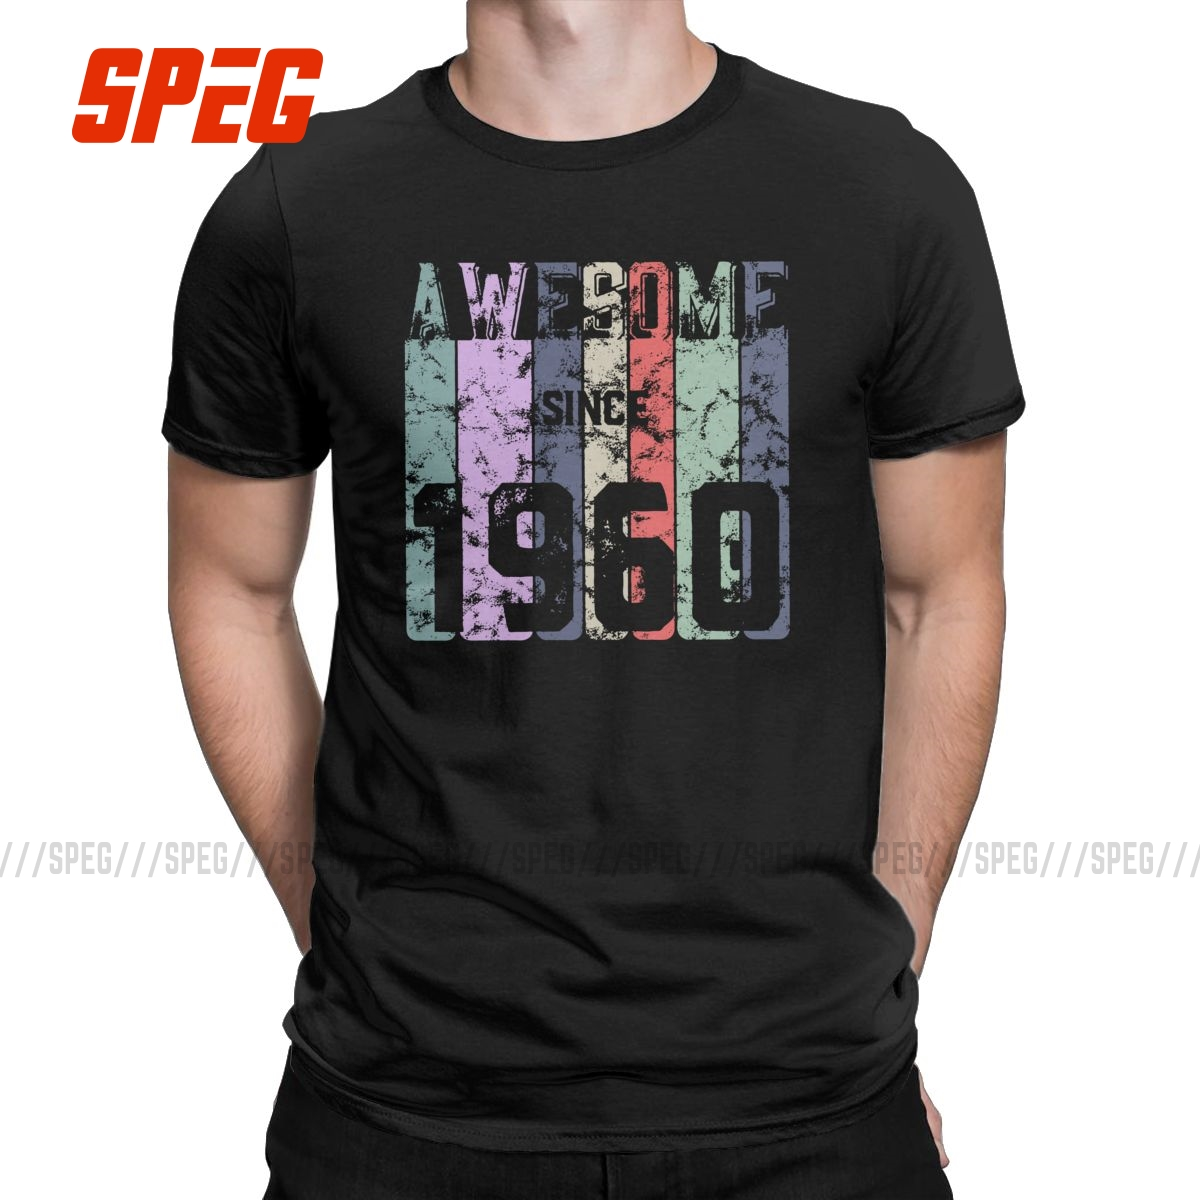 Men Awesome Since 1960 T Shirt 60 Years Old 60th Birthday Gift 100% Cotton Clothes Short Sleeve Tees Graphic Printed T-Shirt